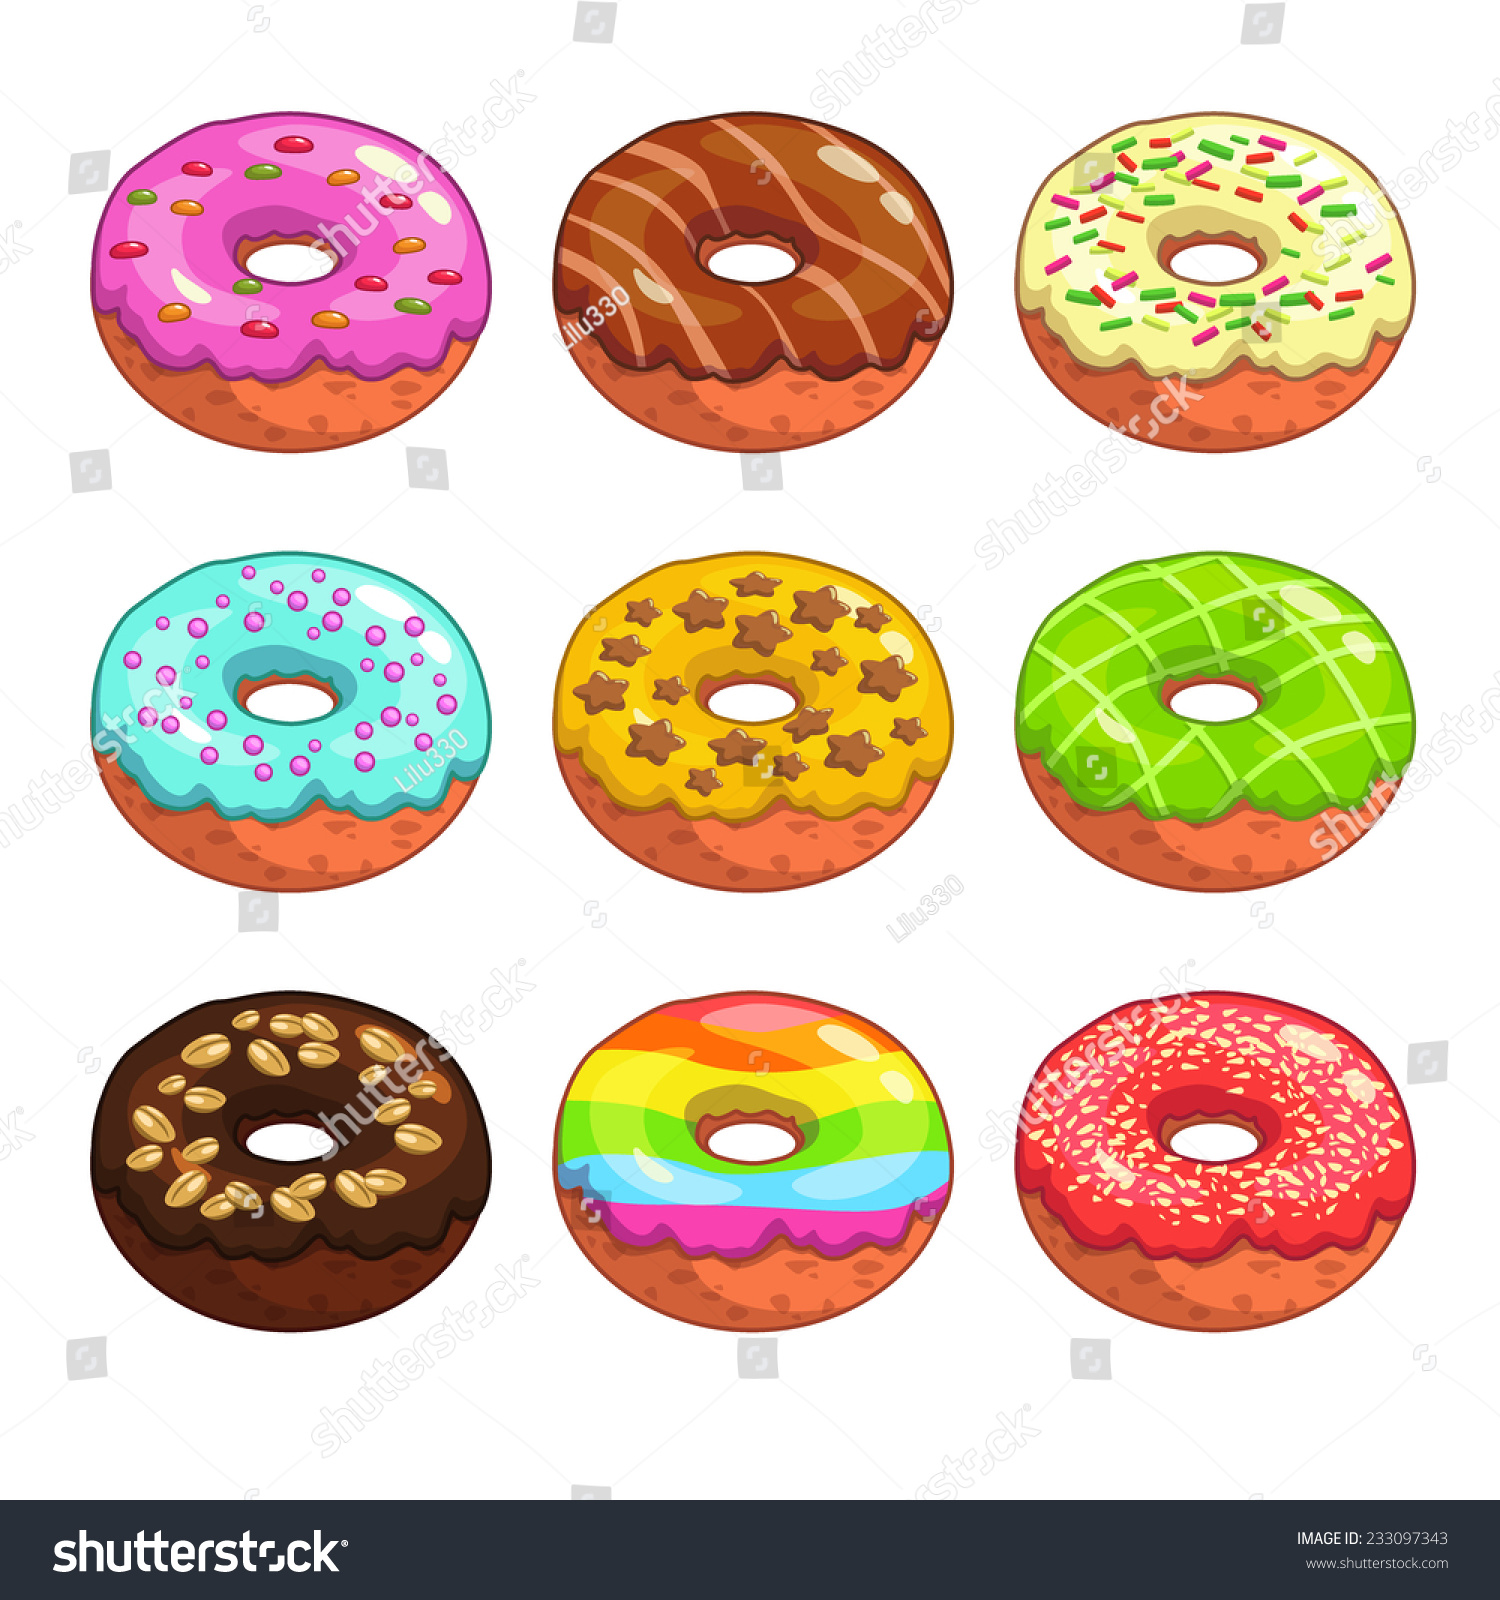 Set Of Cartoon Colorful Donuts On The White Background ...